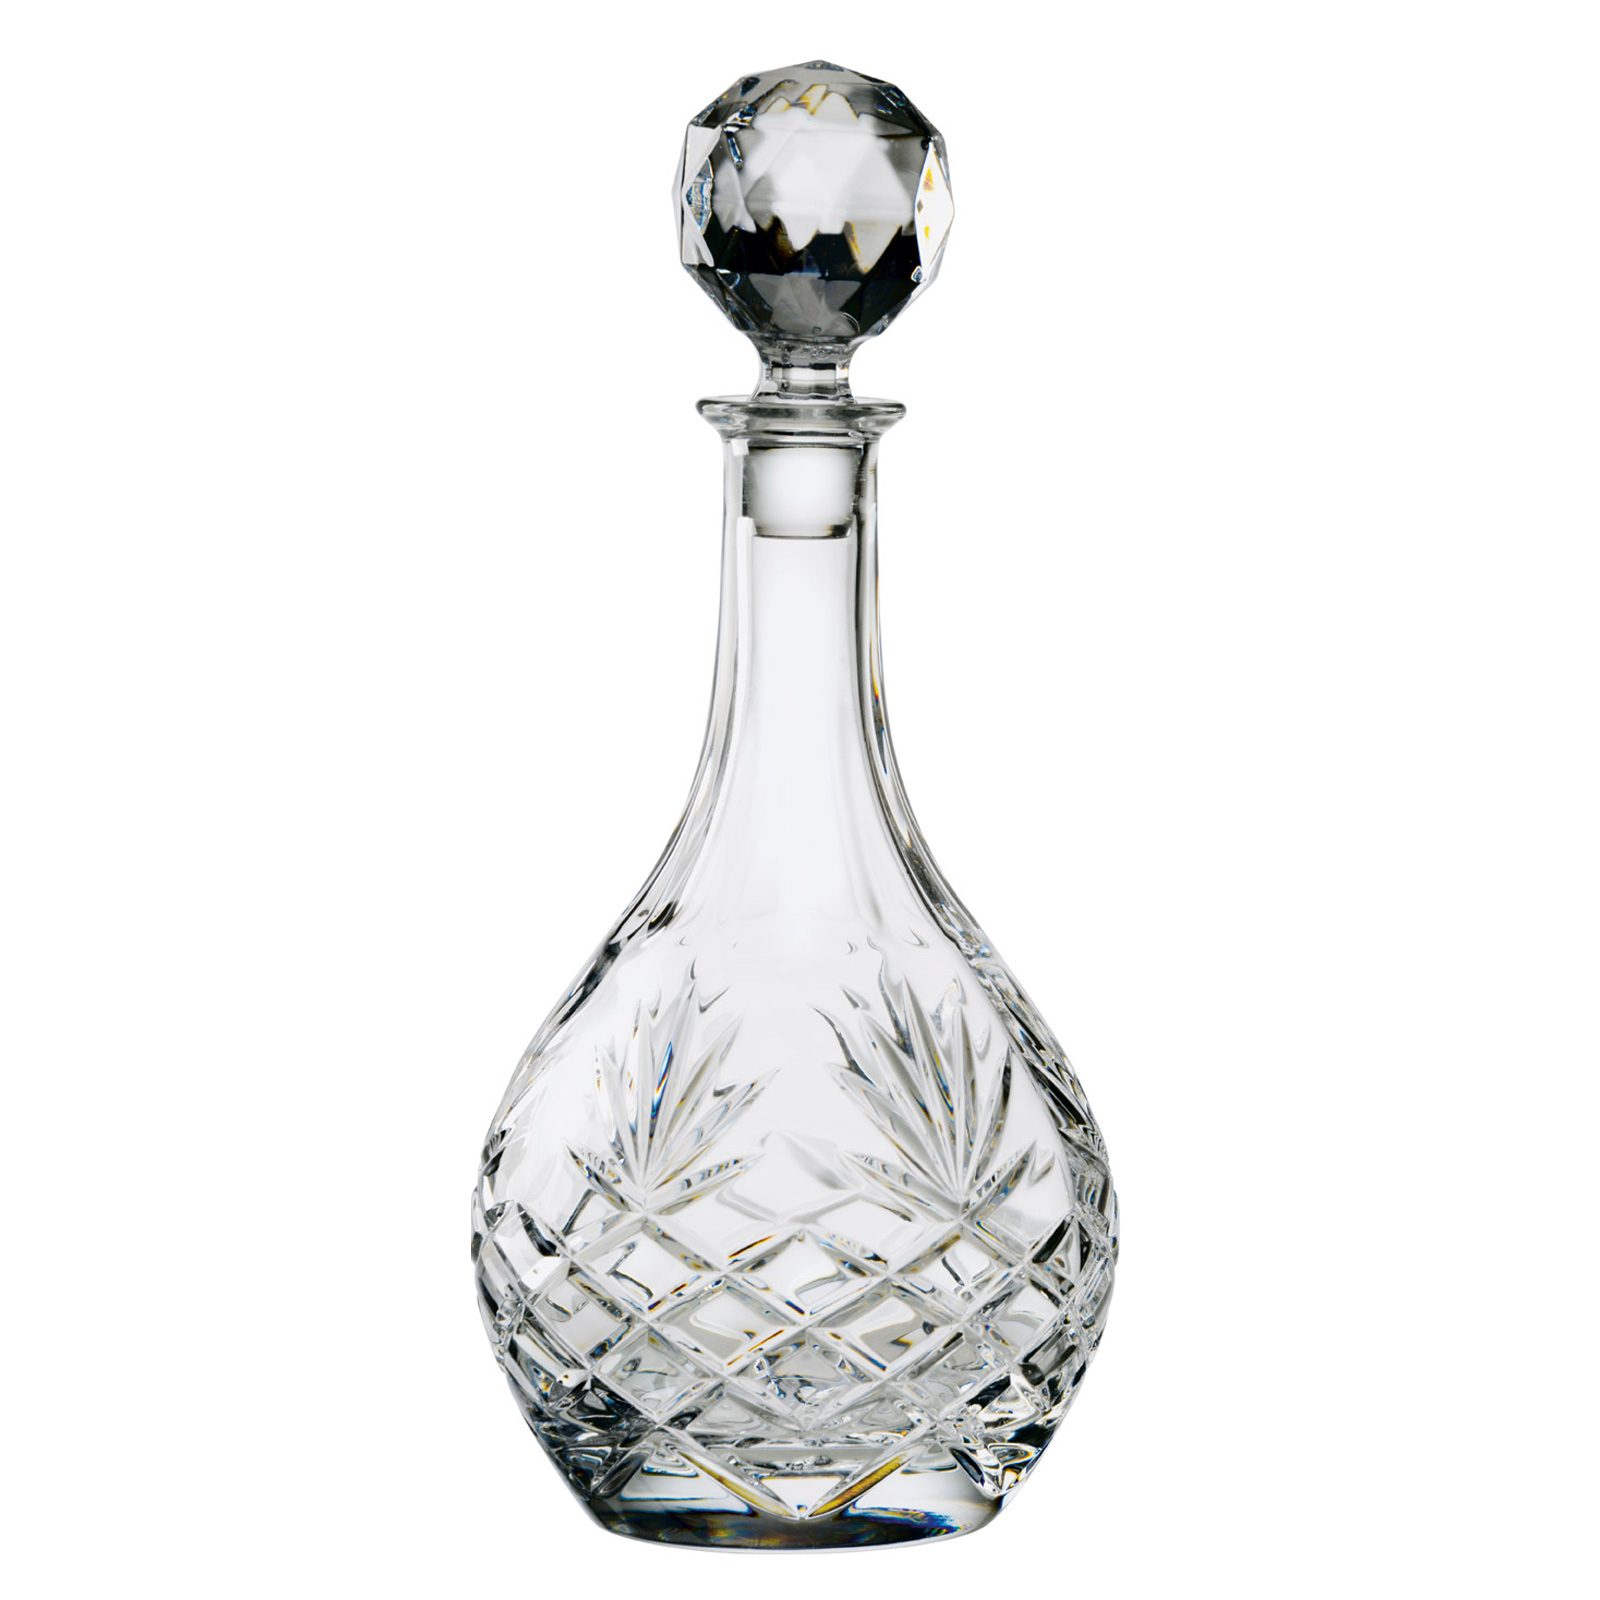 Sovereign Wine Decanter Fully Cut (24%) by Dornberger